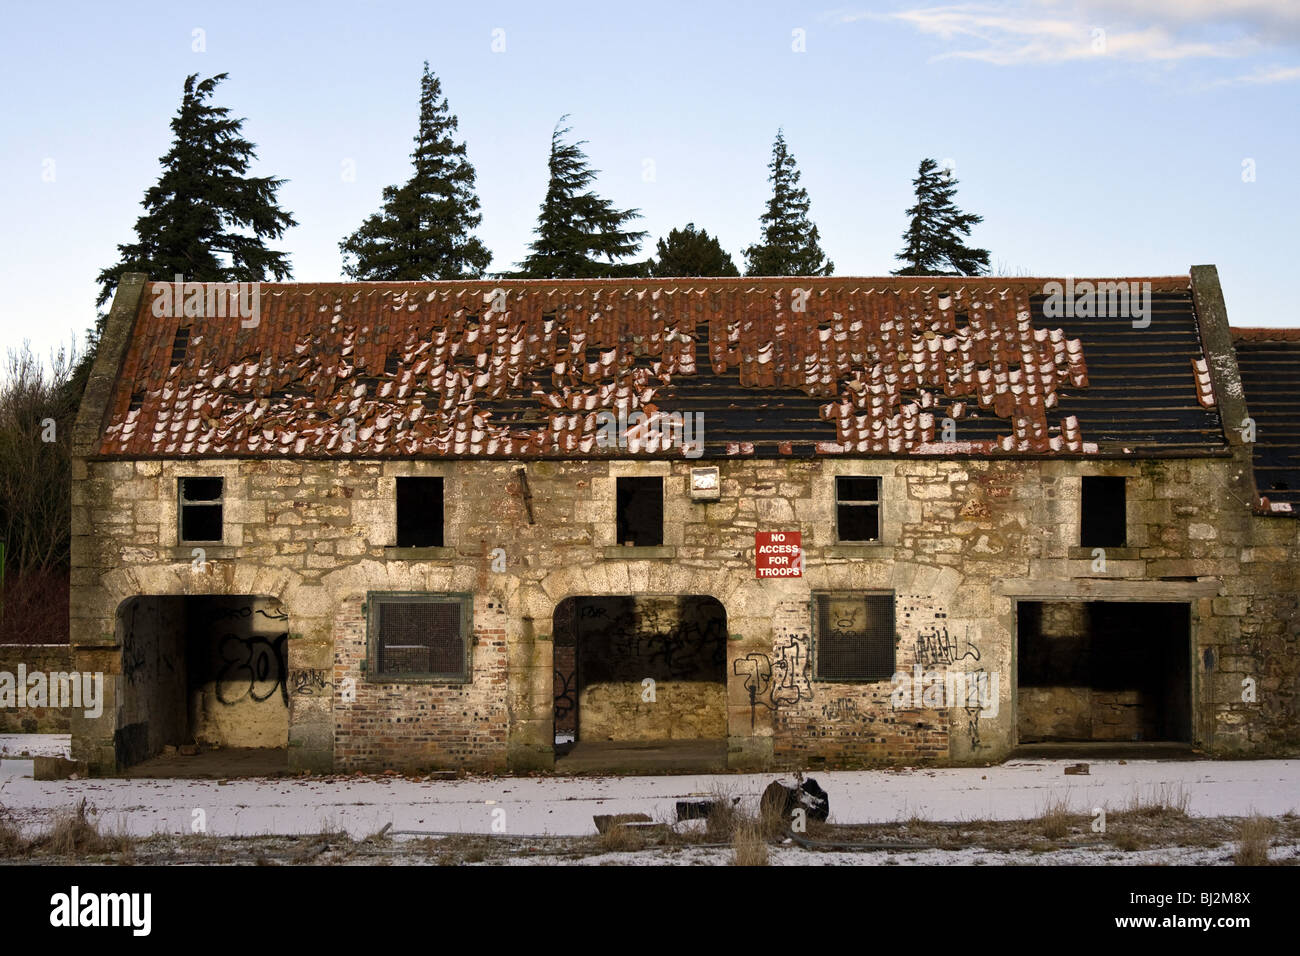 An abandoned building on a winter's day. A sign on the wall reads 'no access for troops' - Stock Image